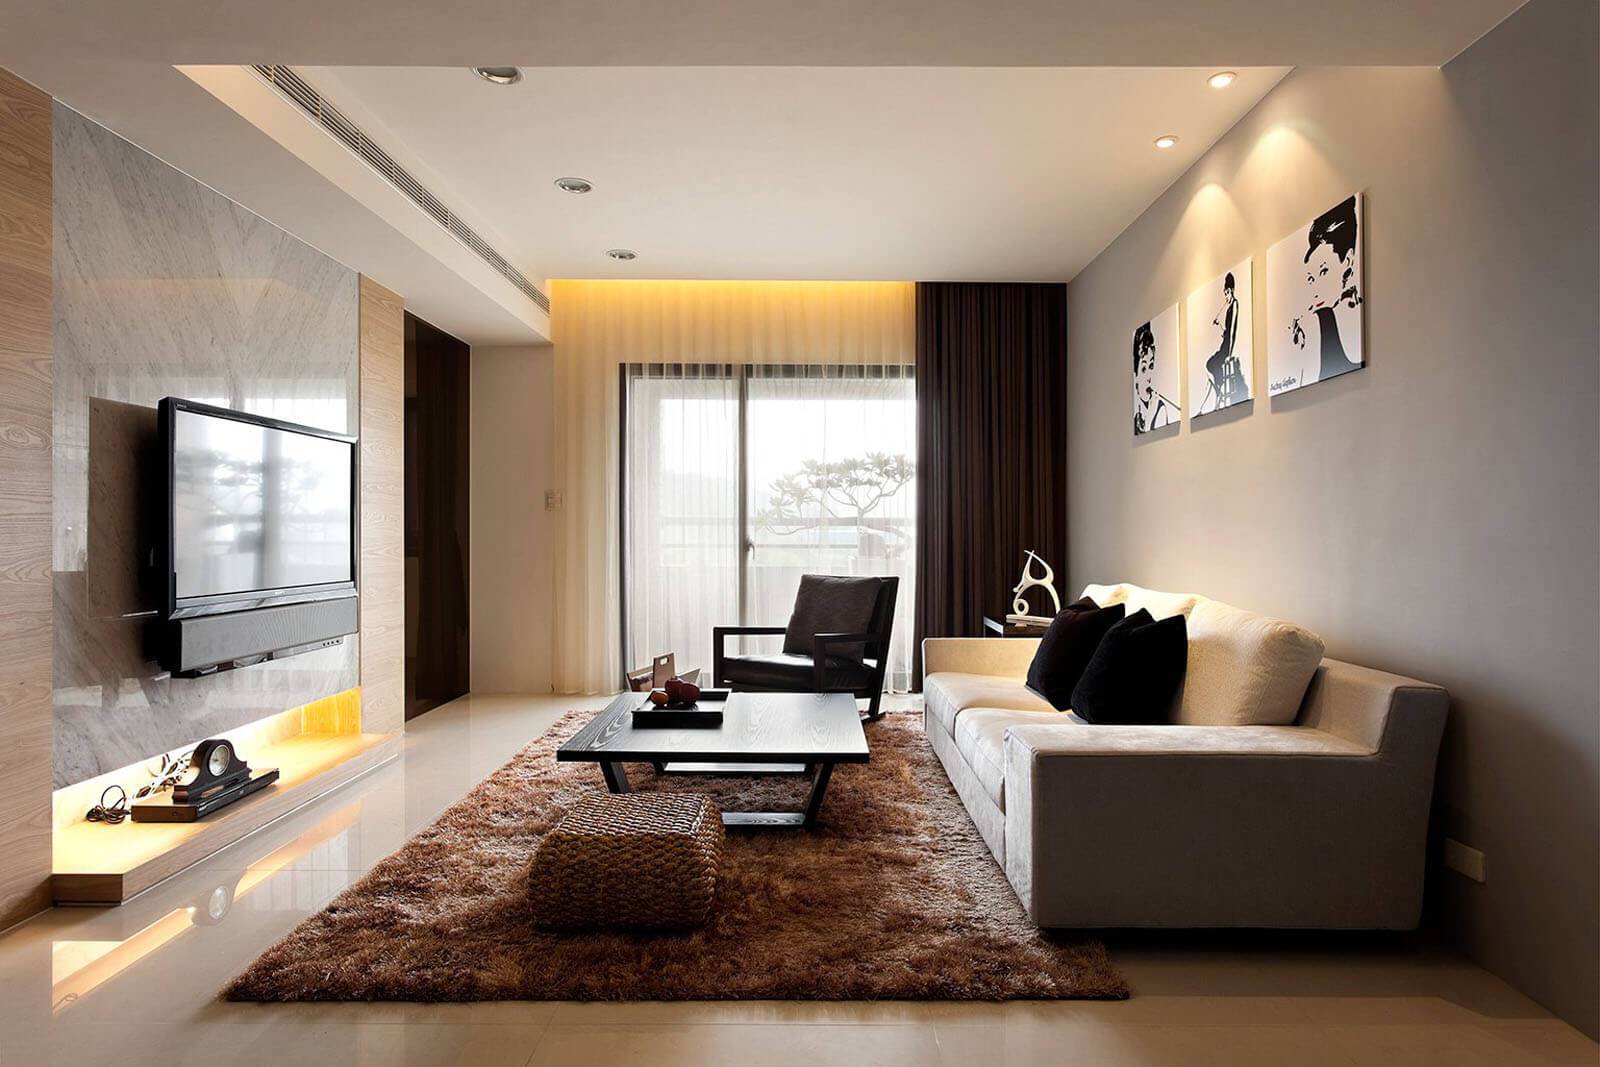 124+ great living room ideas and designs - photo gallery - home